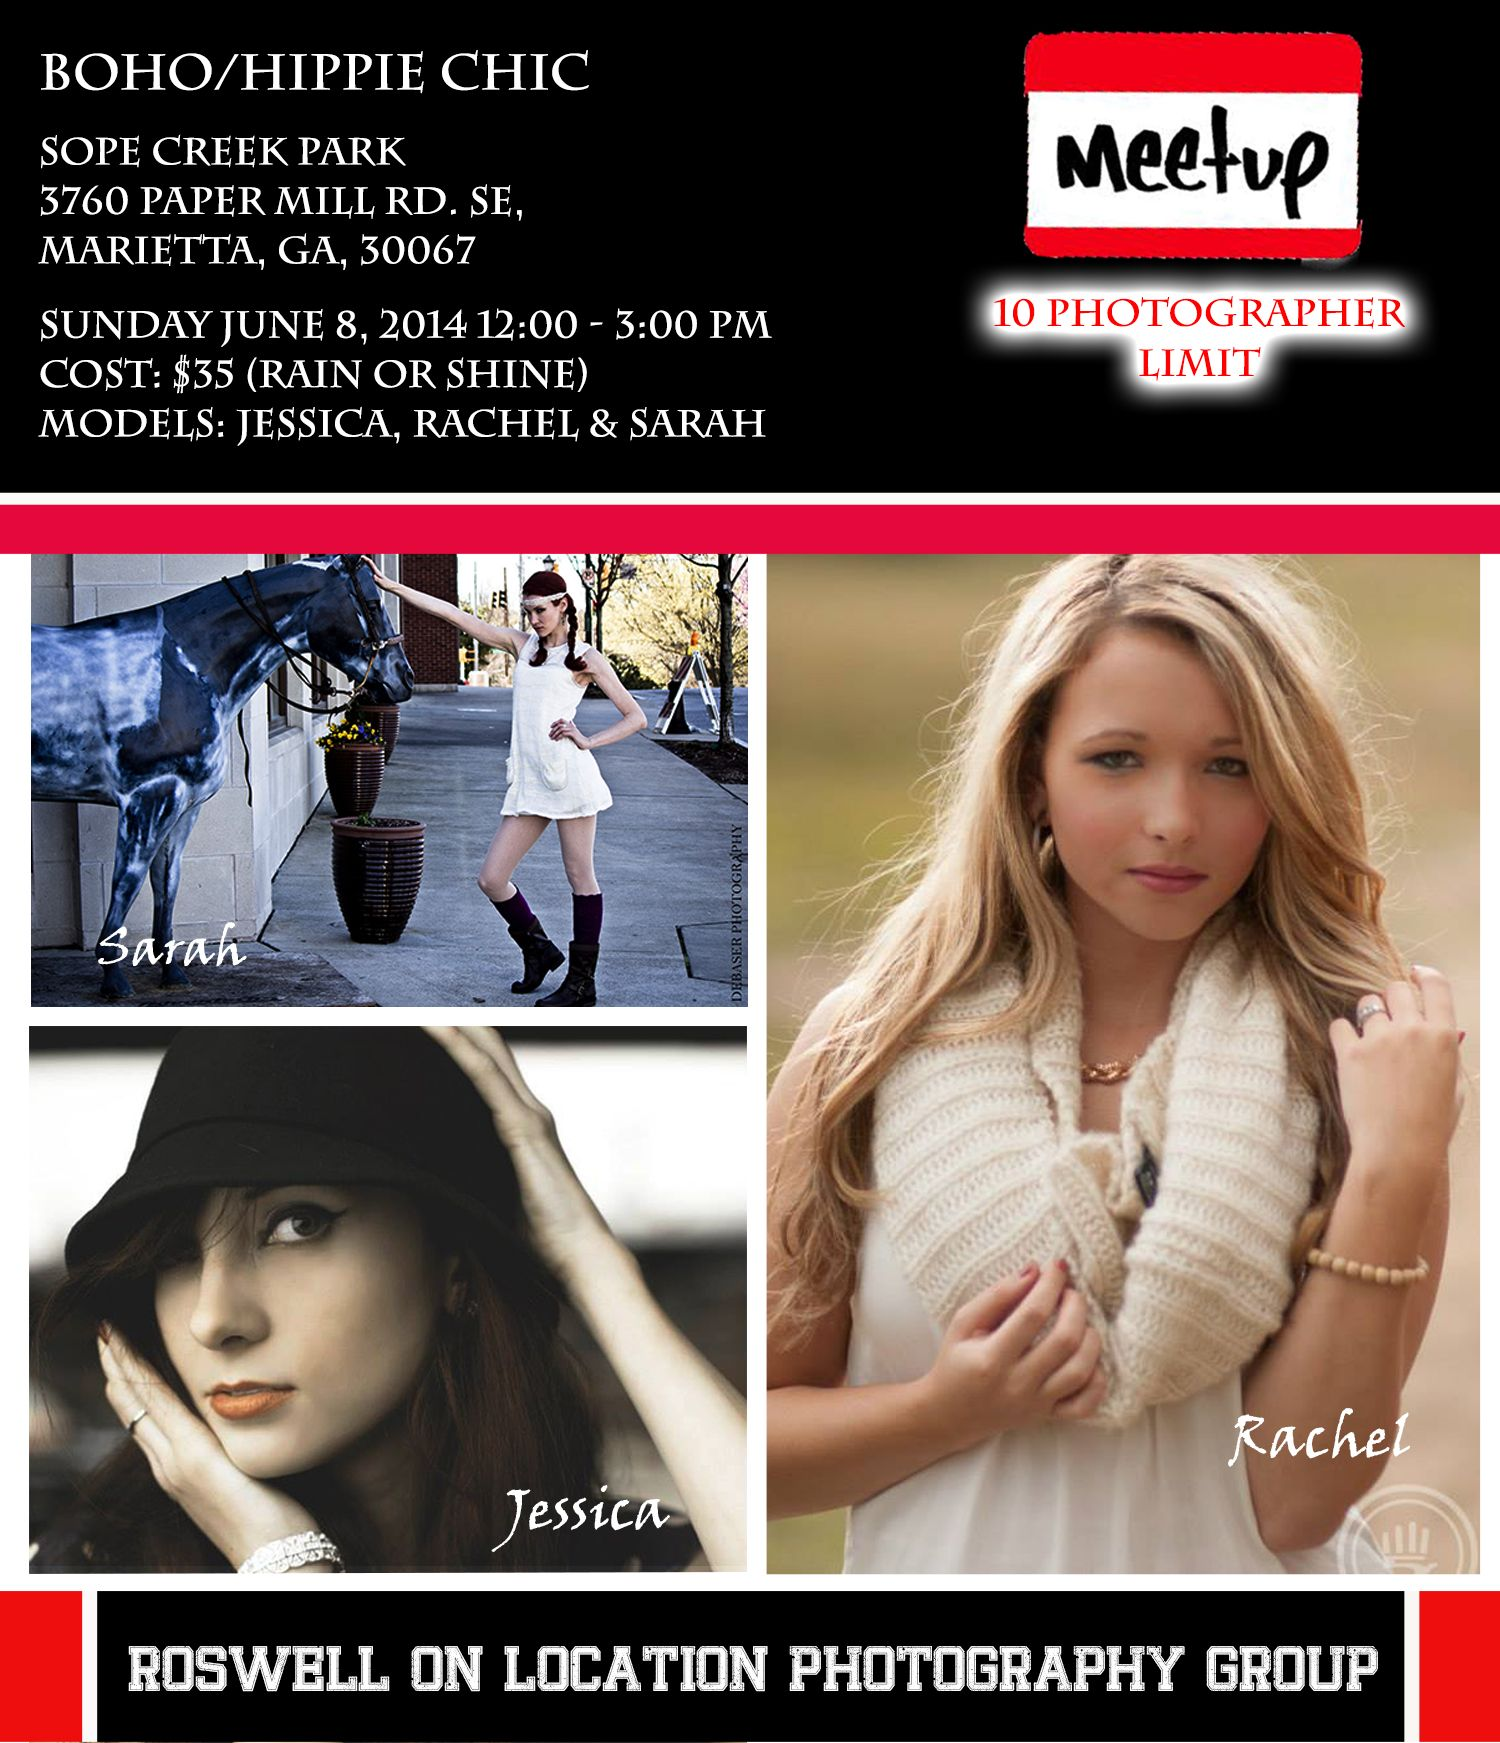 Next Meetup June 8th. Details...http://www.meetup.com/Roswell-On-Location-Photography/events/184460282/